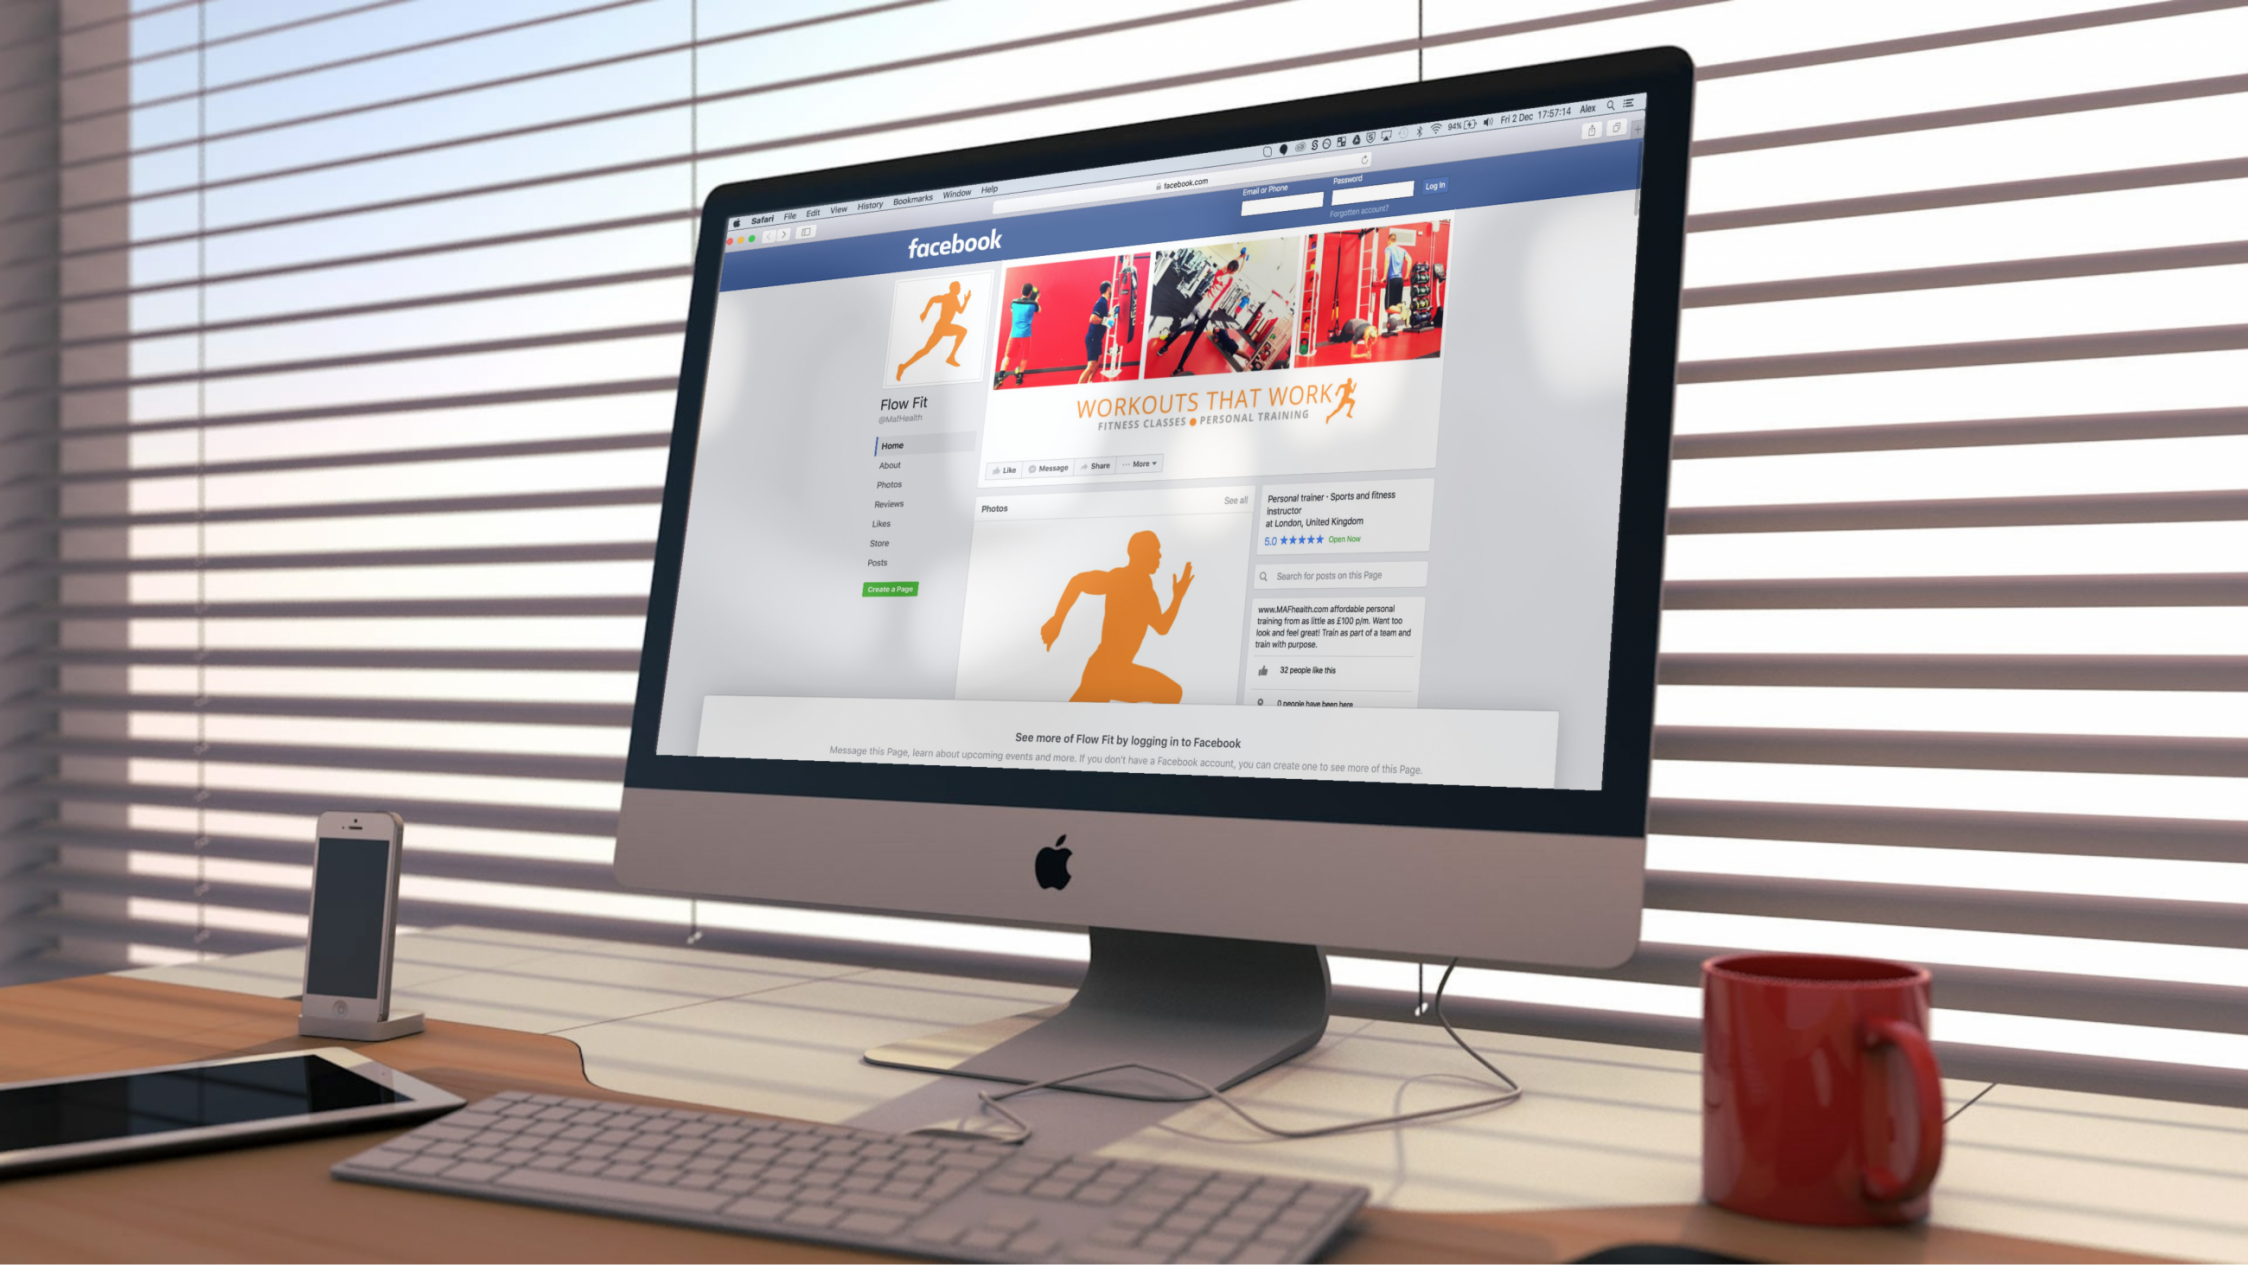 ffit website mockup3 - Social Media Page Design for Fitness Instructor